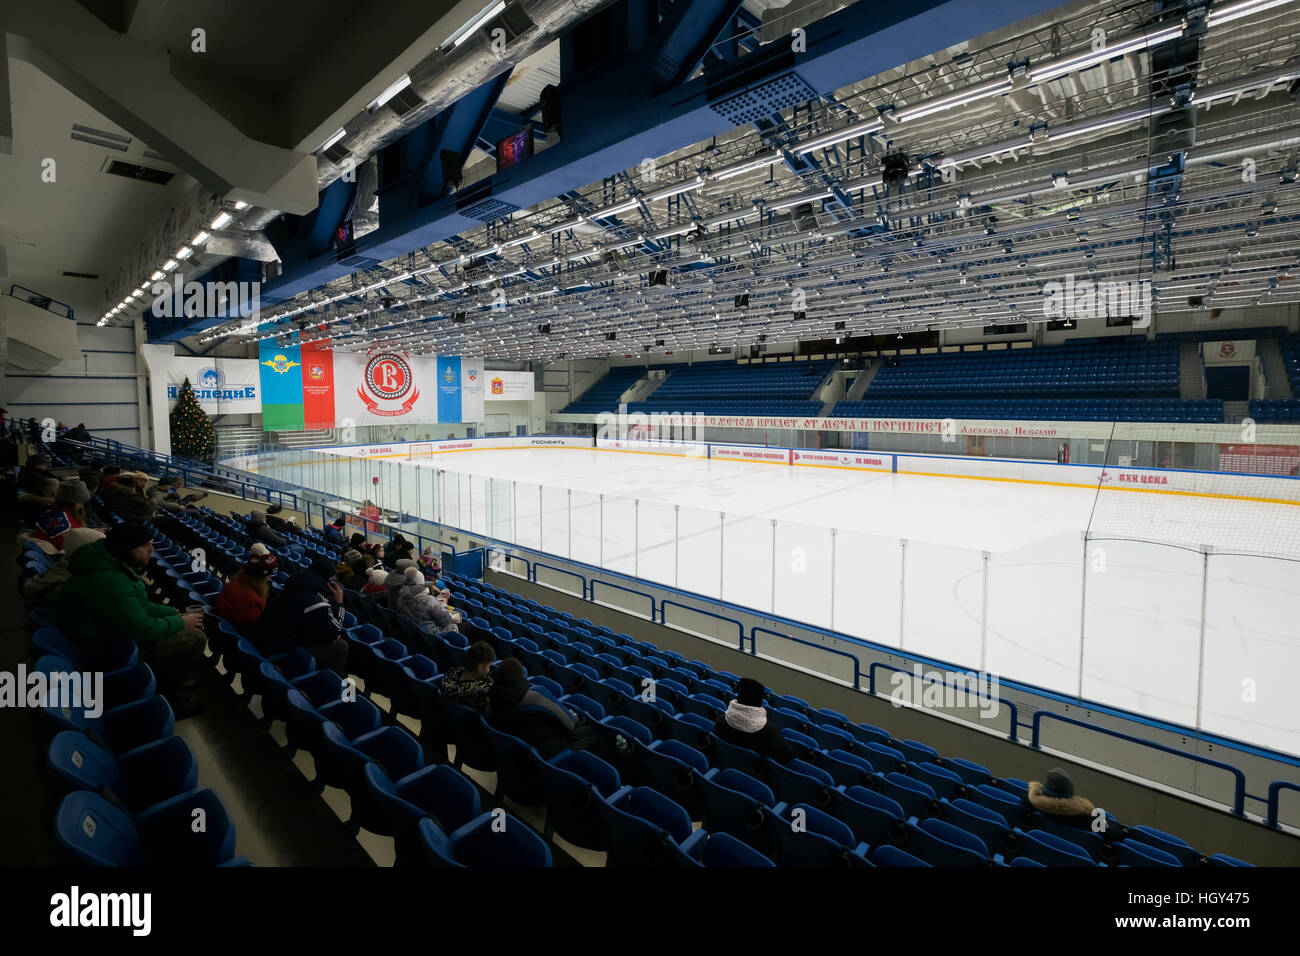 Hockey arena before the match between the teams - Stock Image